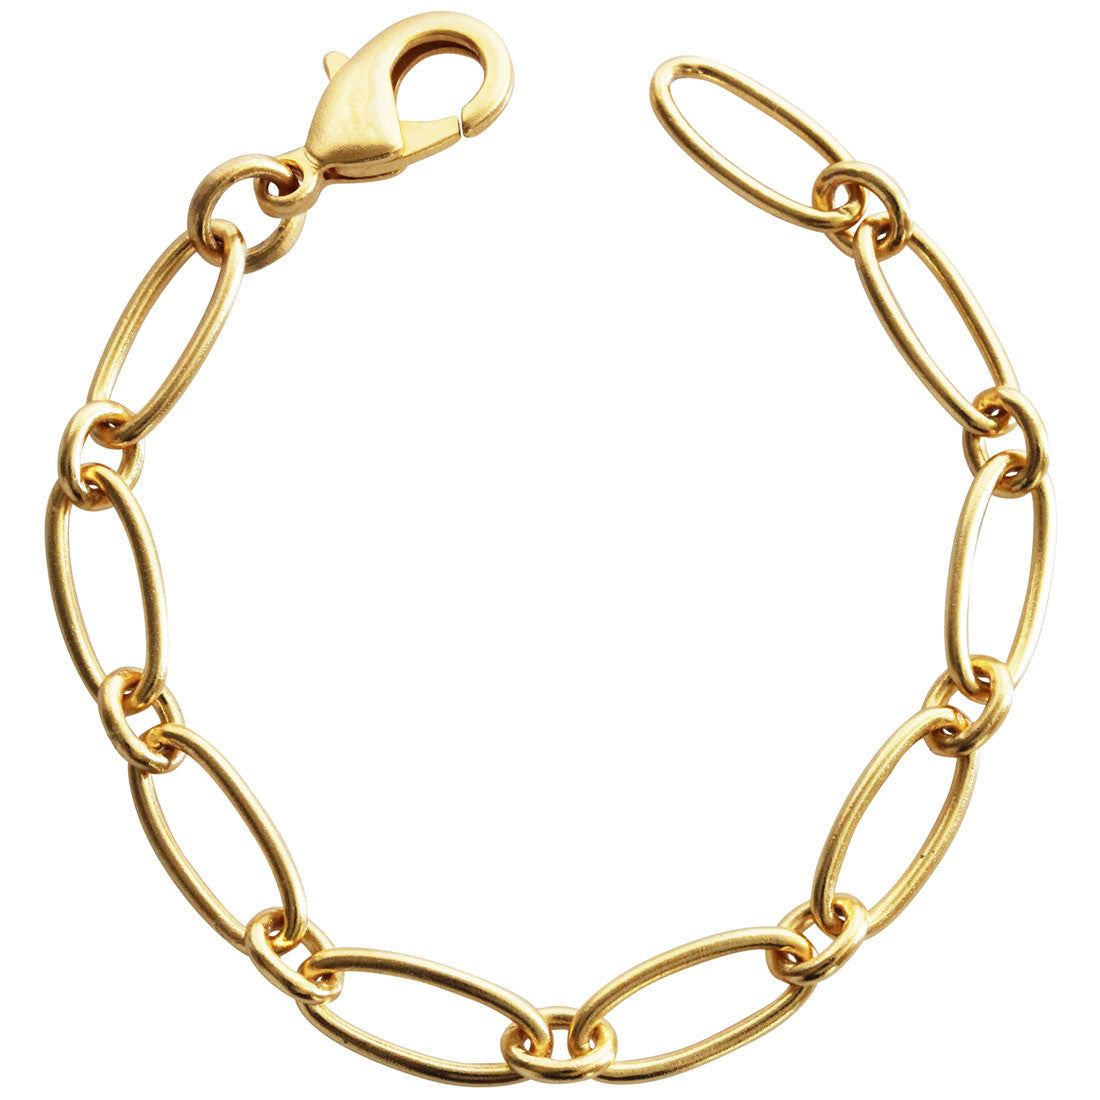 "Mariana 5"" Extender for Necklace or Bracelet - Gold Plated 3990yg"